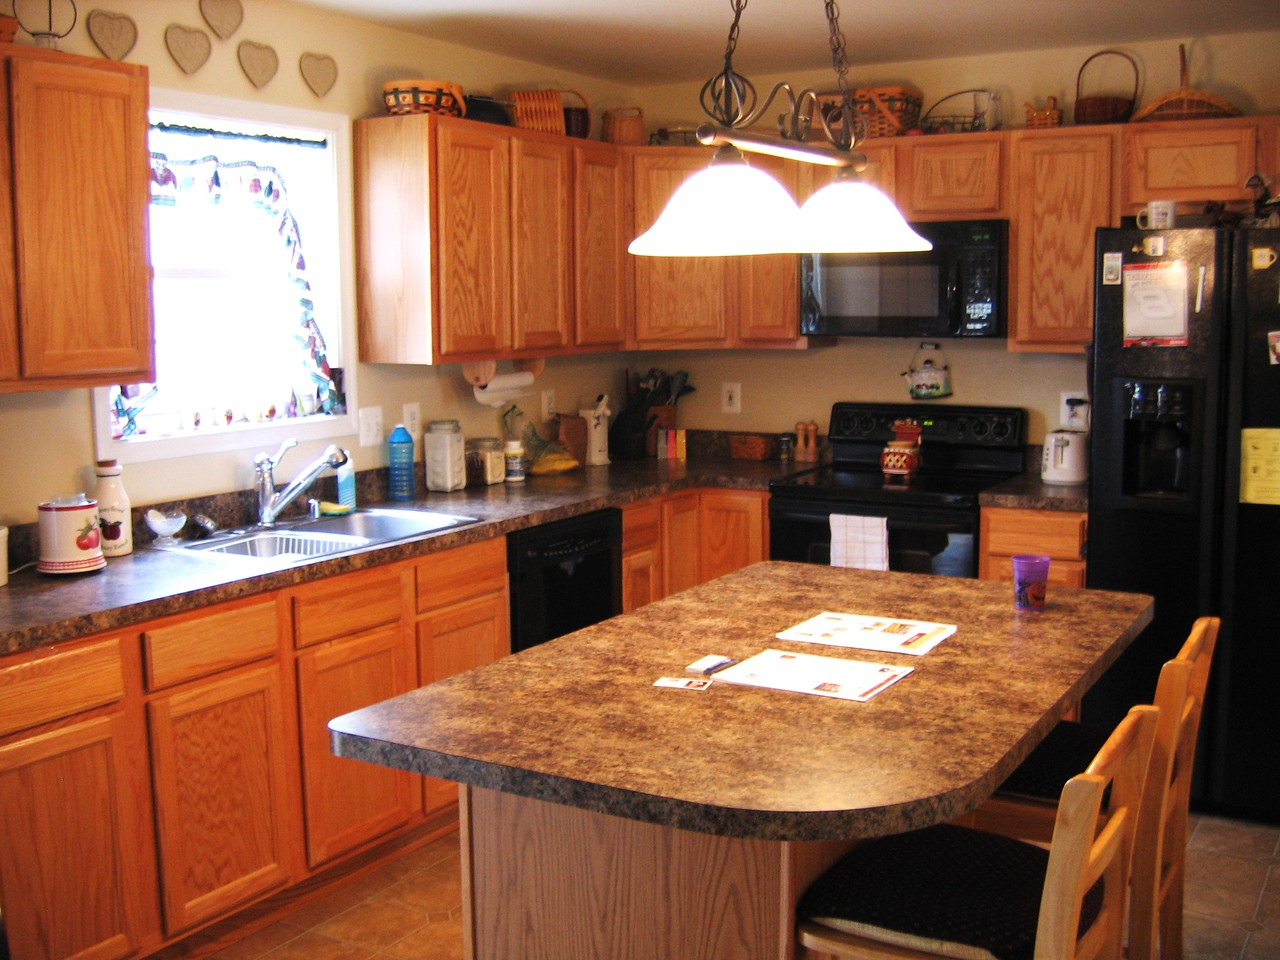 The kitchen has an island with formica countertops and oak trim cabinets.  The appliances are new and the stove is a hot point style.